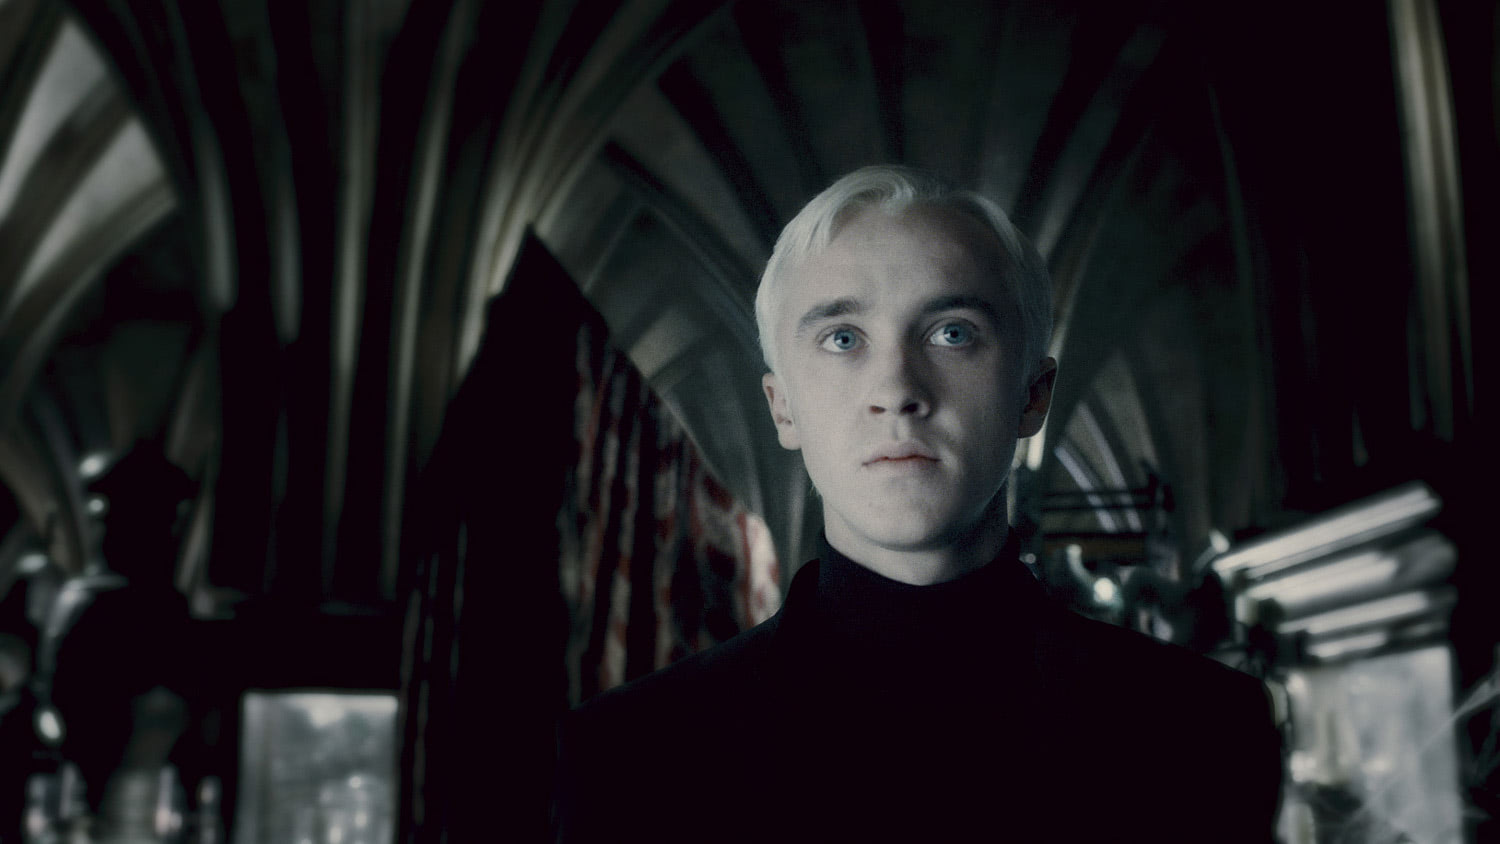 Draco in the Room of Requirement